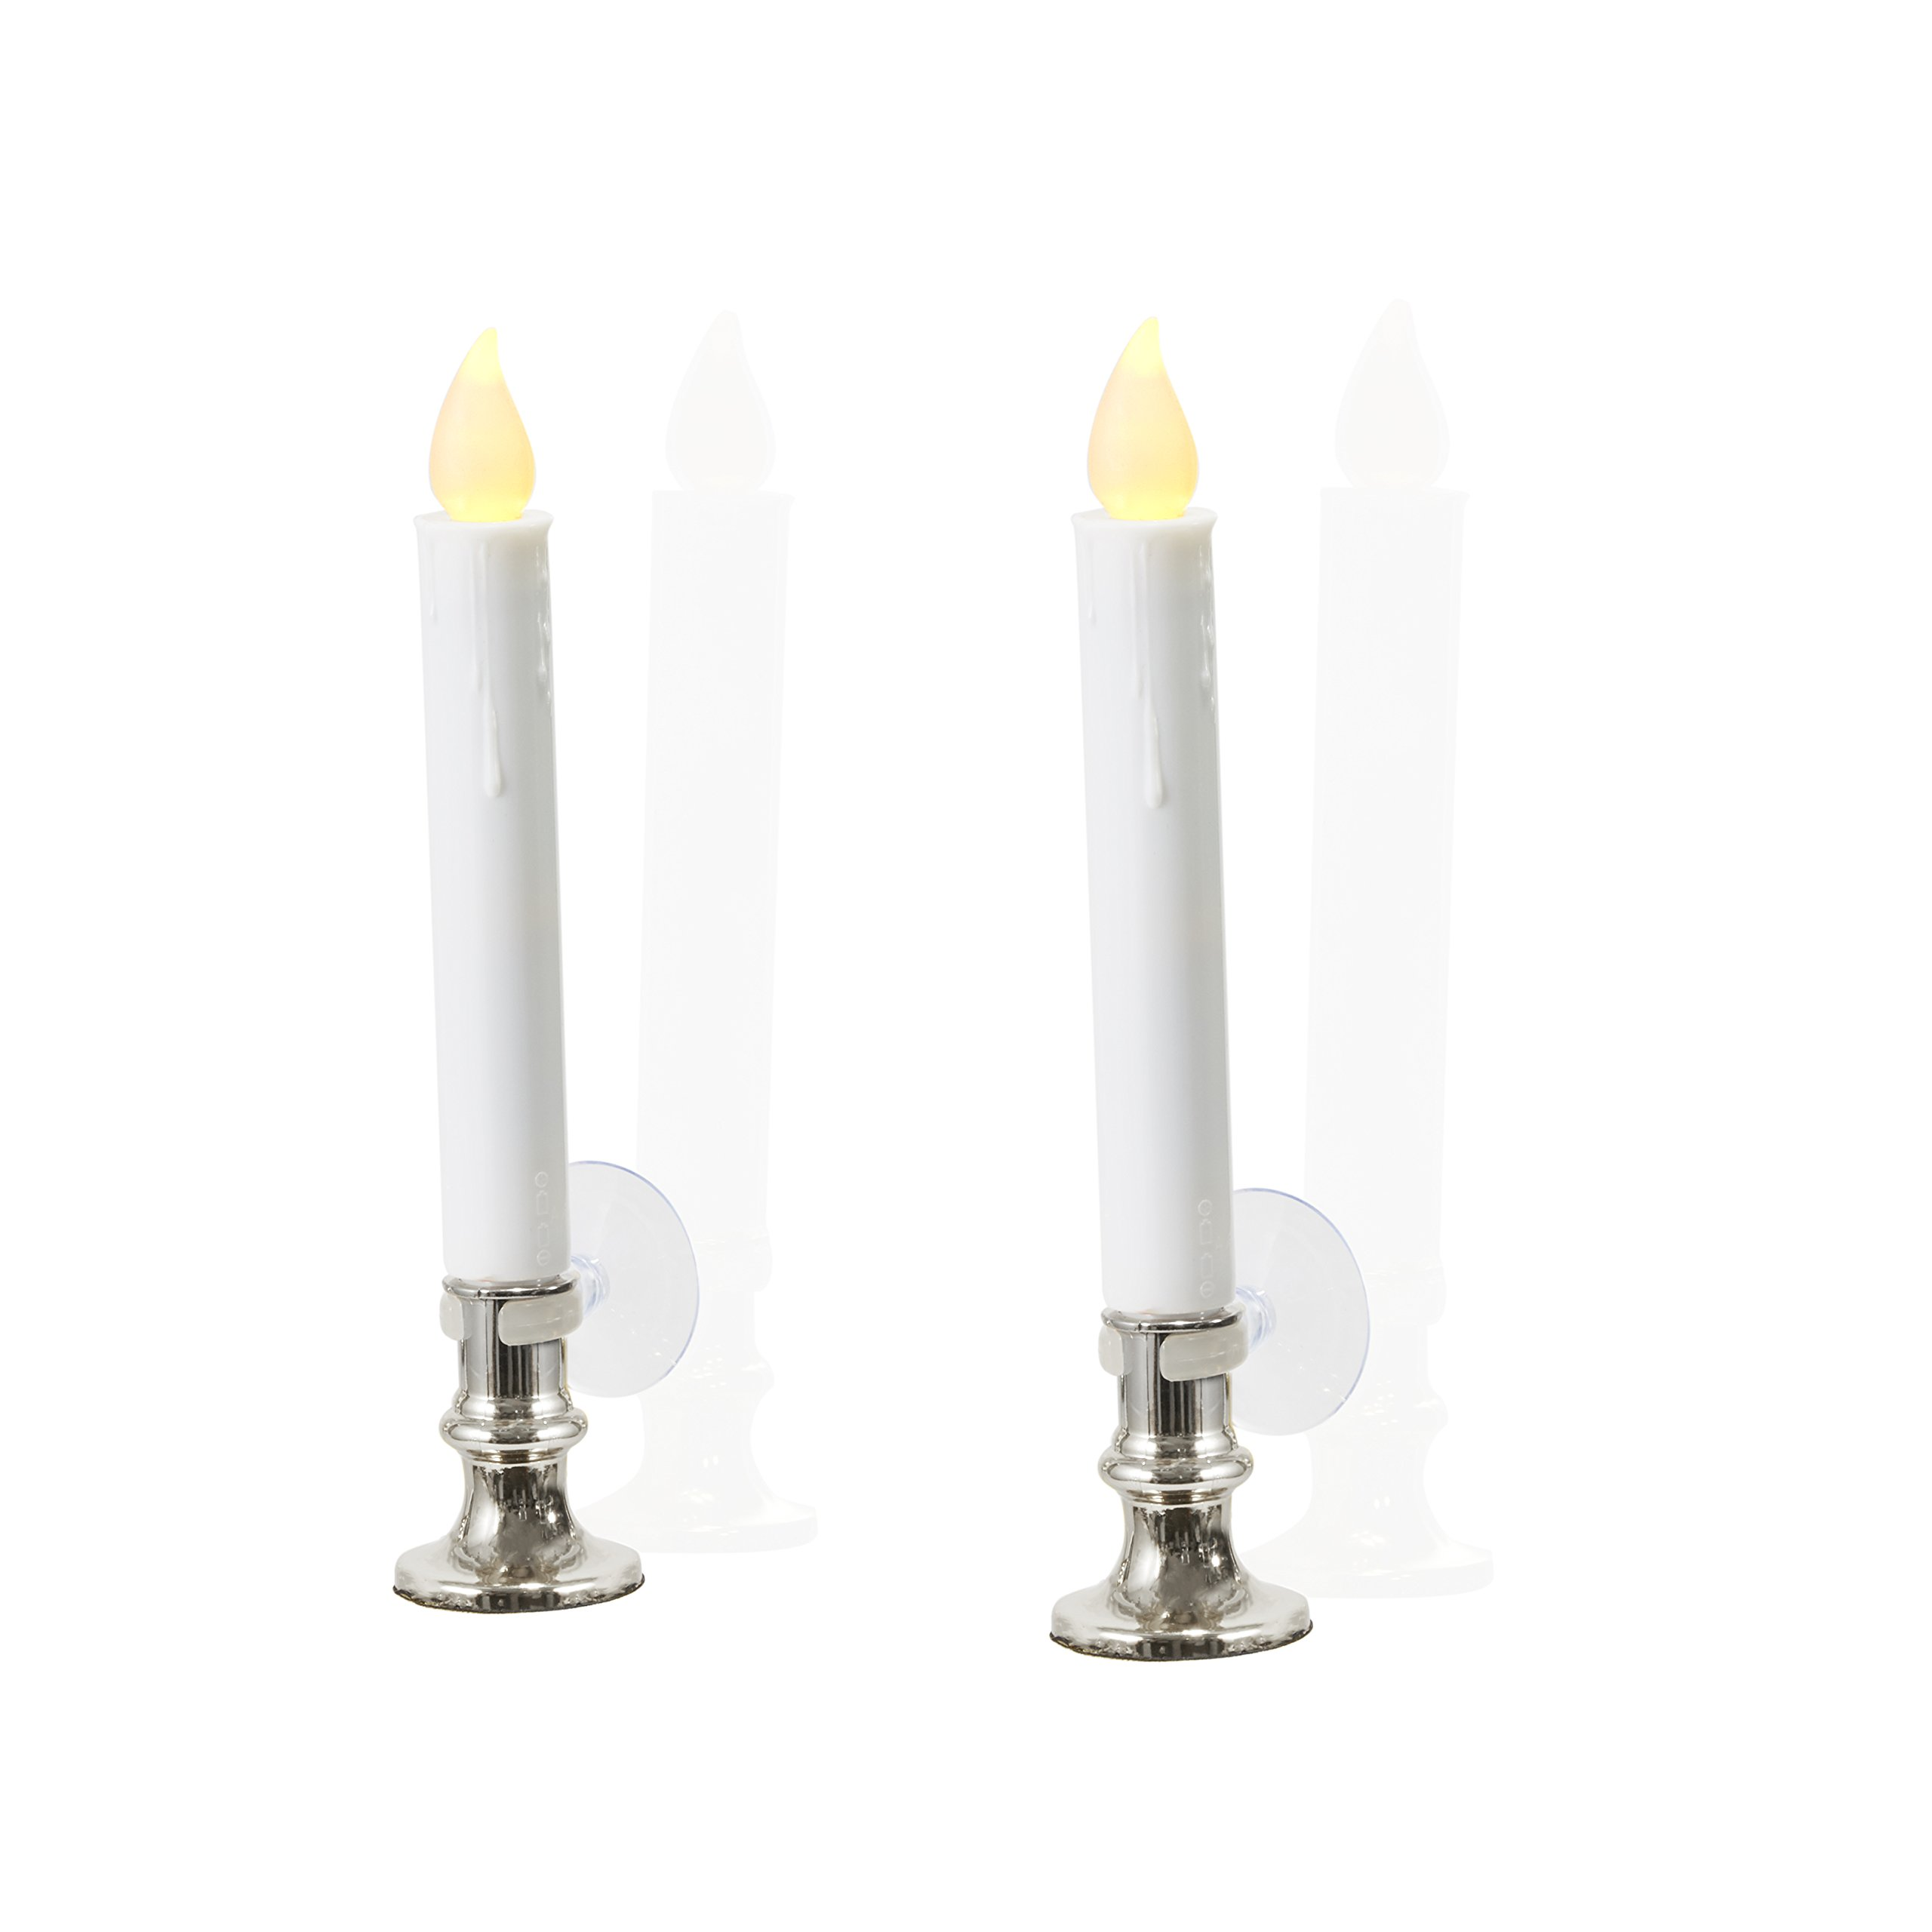 Flameless White LED Taper Candles with Silver Removable Candle Holders, Remote & Batteries Included - Set of 8 by LampLust (Image #4)